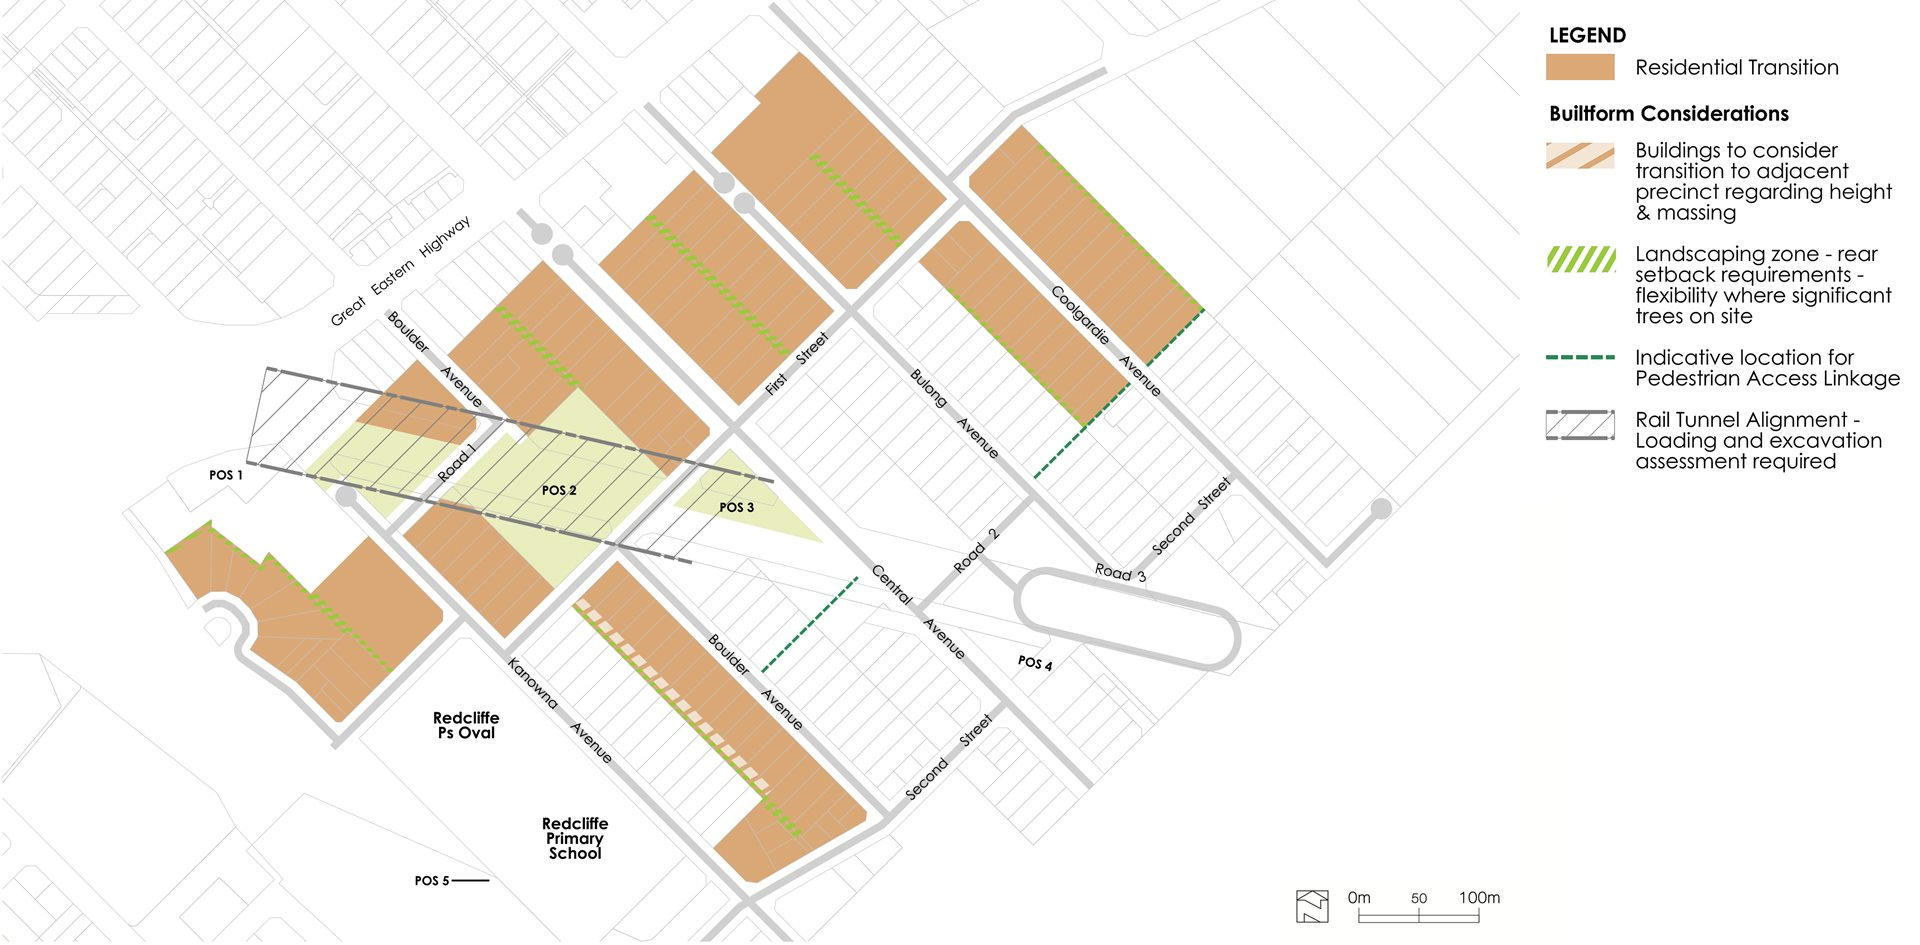 Residential Core Precinct Map